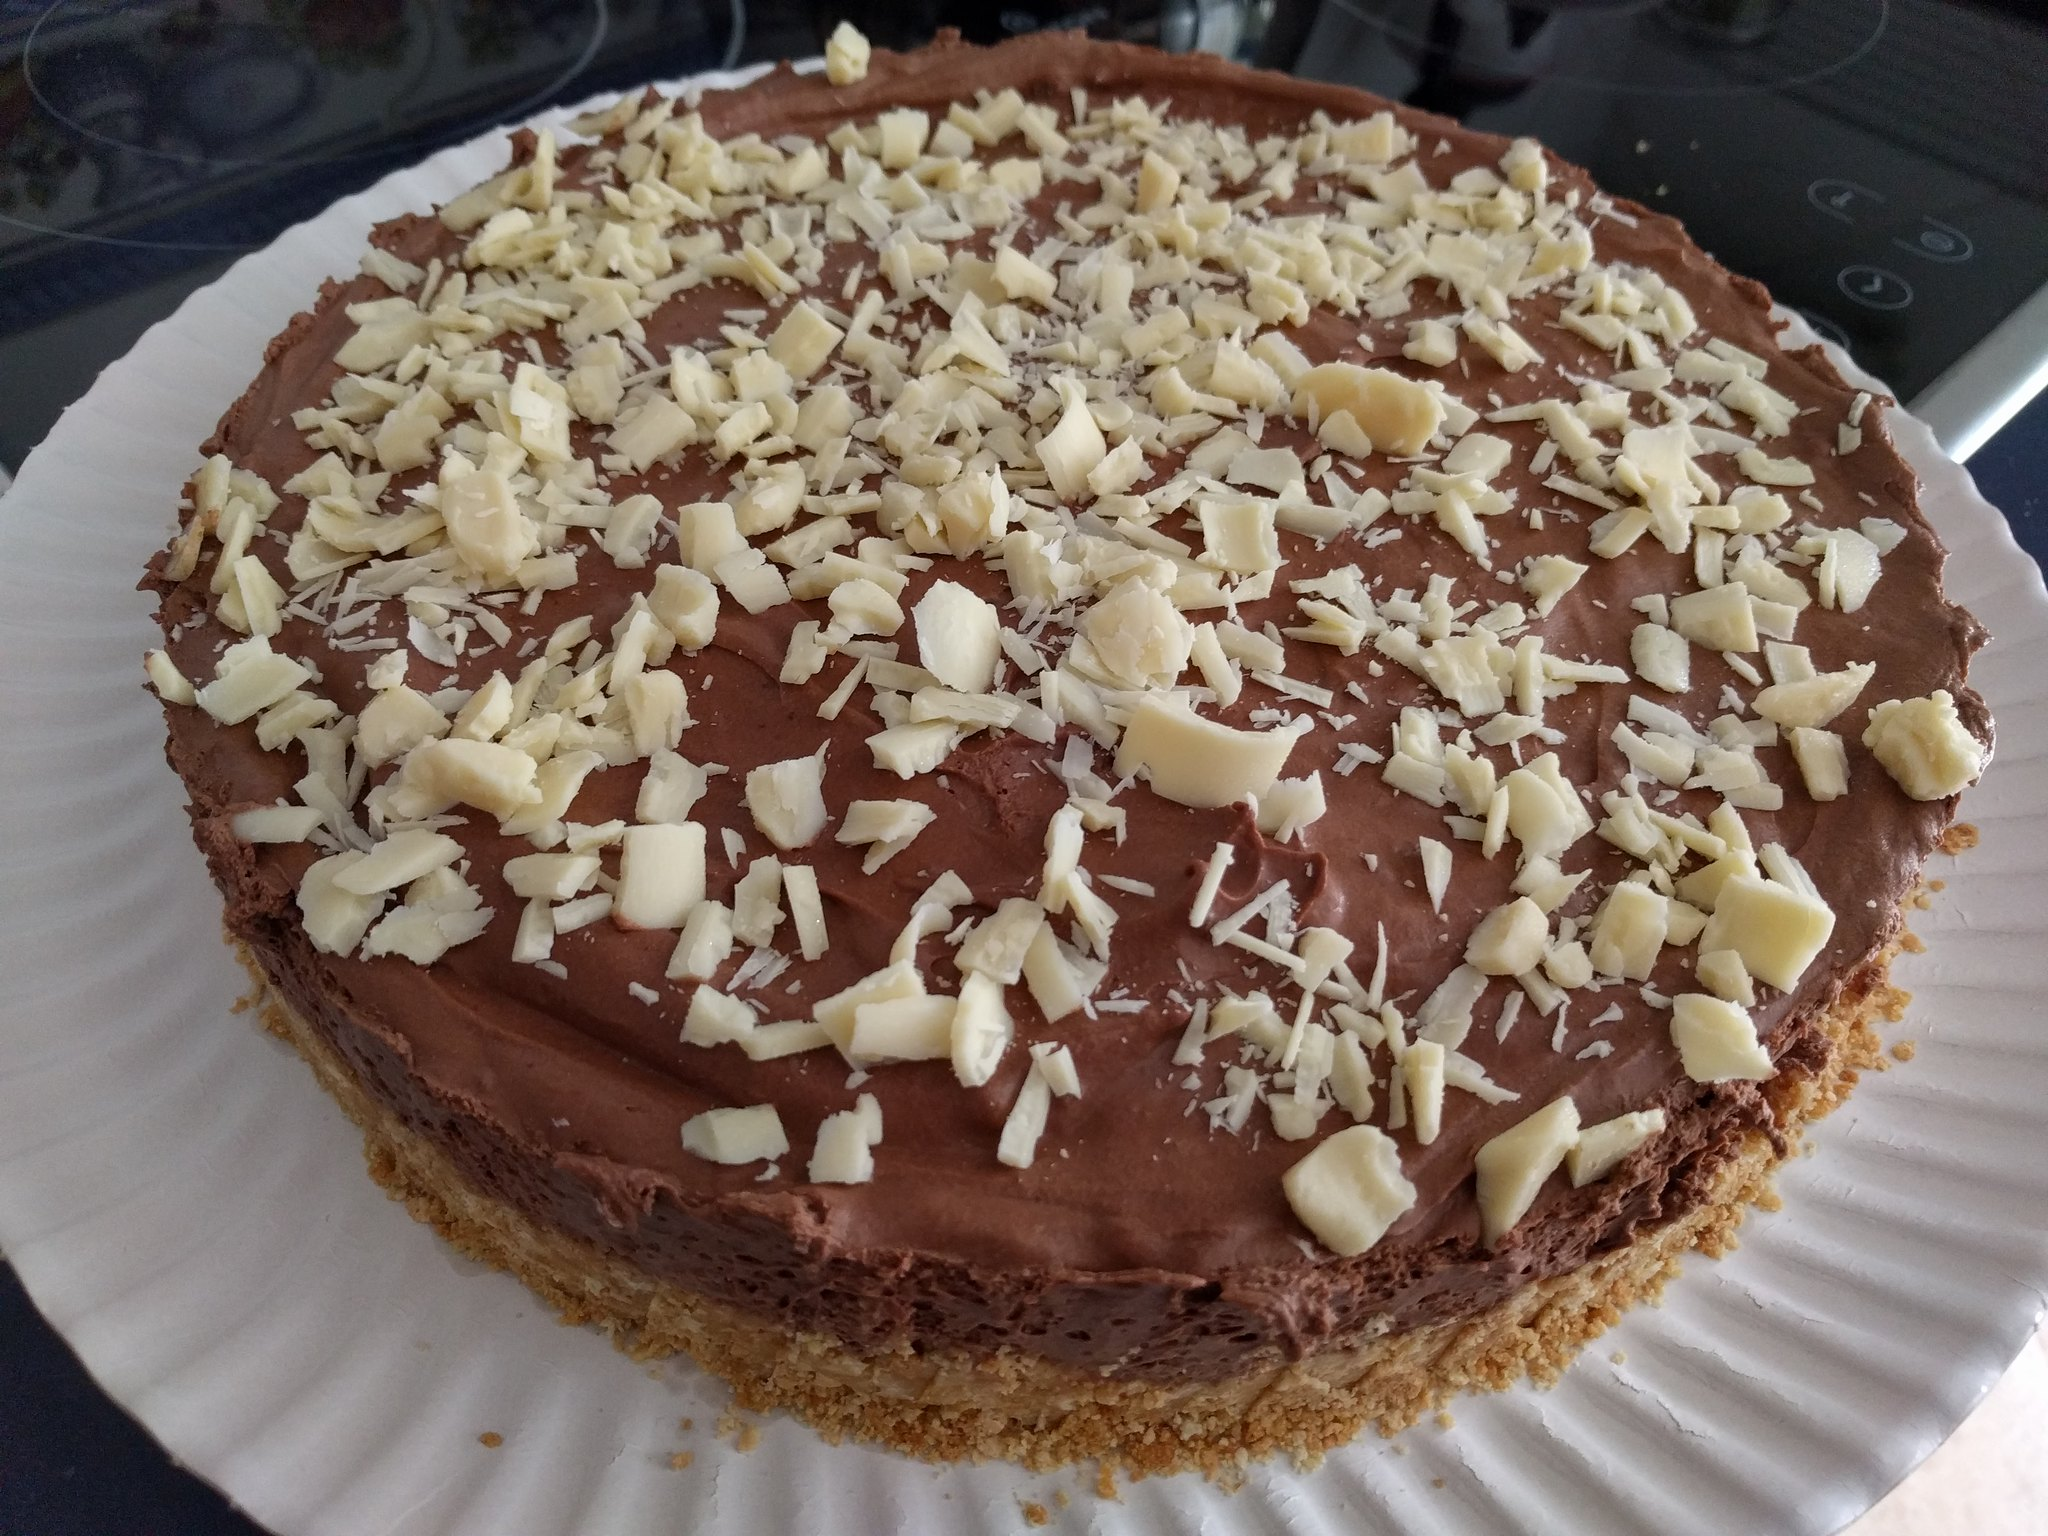 Tarta de mousse de chocolate con trocitos de chocolate blanco